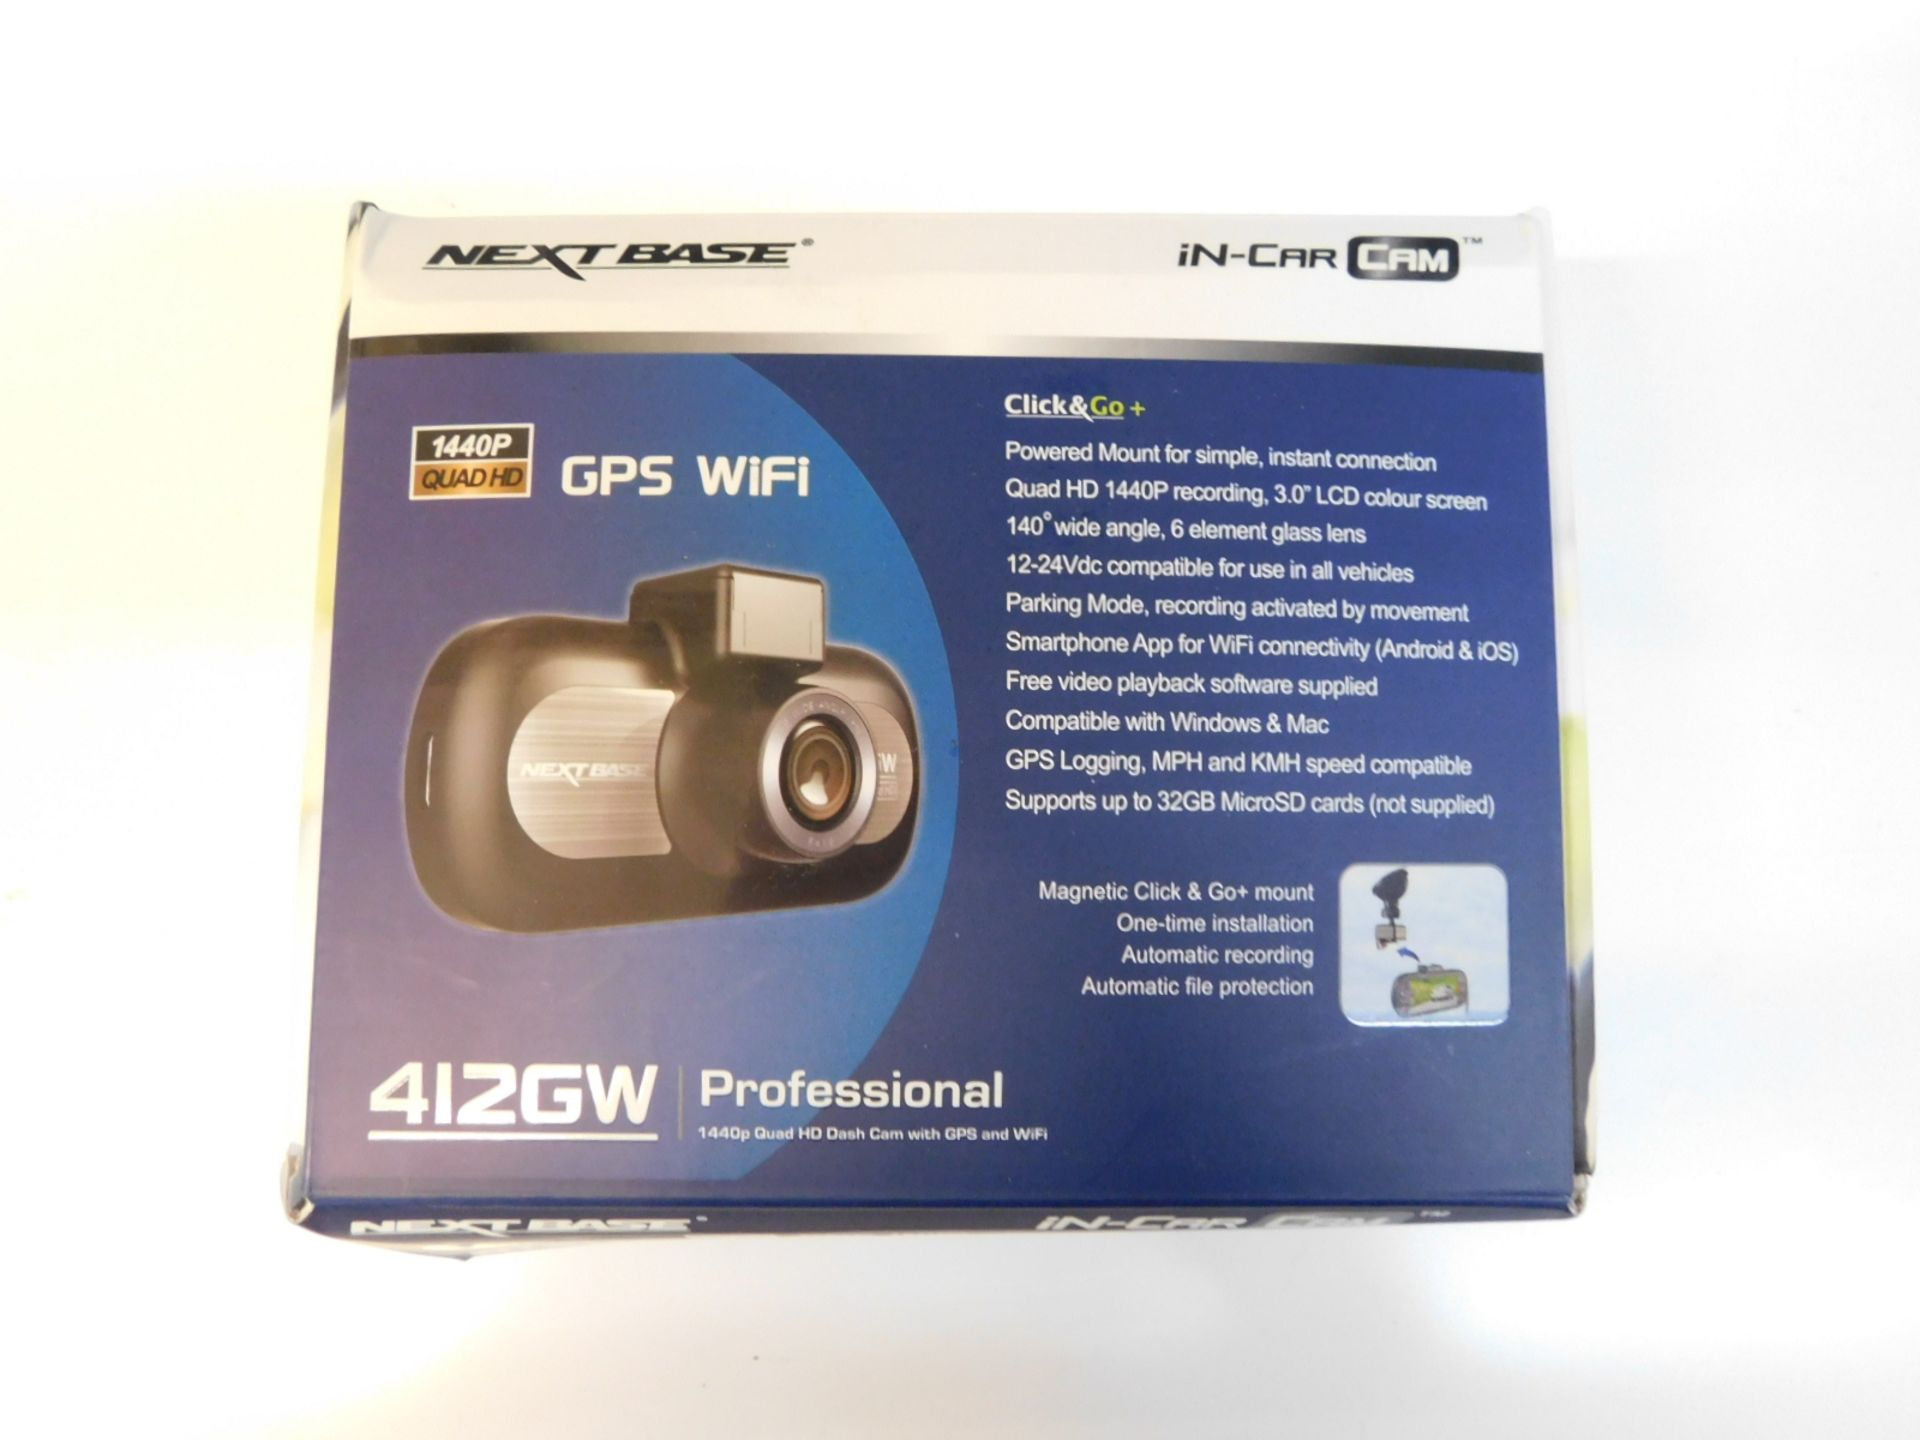 Lotto 1042 - 1 BOXED NEXT BASE 412GW PROFESSIONAL HIGH DEFINITION IN CAR CAM RRP £199.99